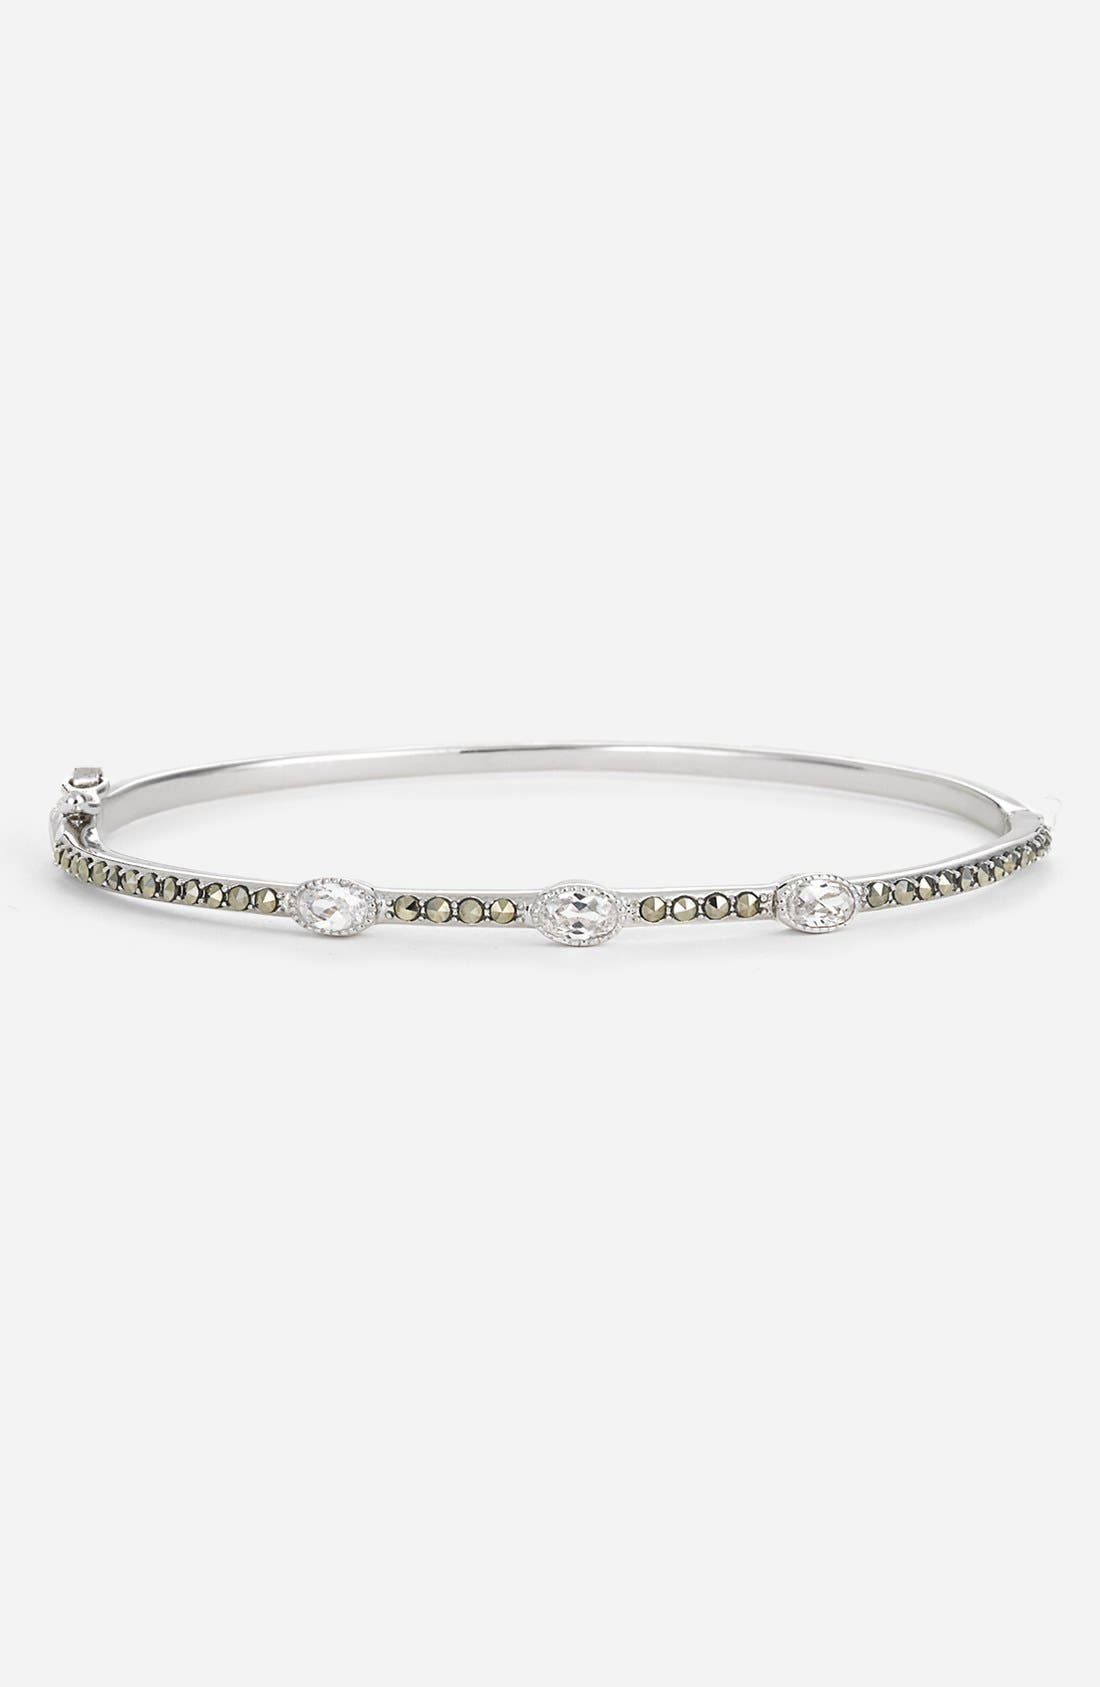 Main Image - Judith Jack 3-Stone Oval Stackable Bangle